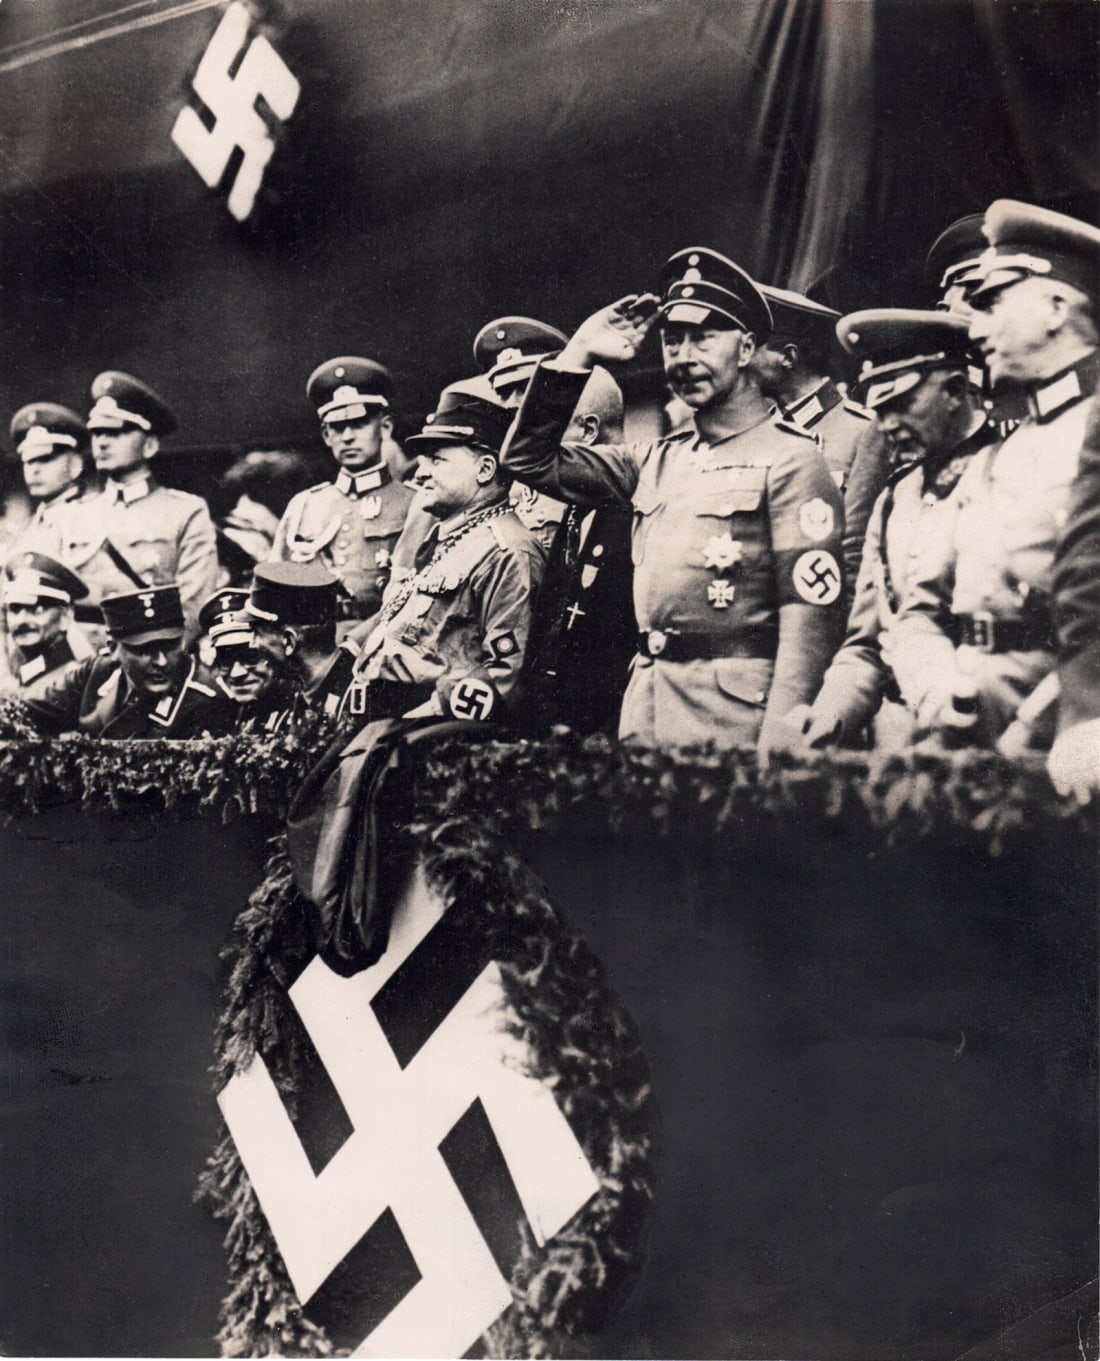 A photograph discovered by historian John Rohl shows Germany's former Crown Prince Wilhelm saluting at an SA rally in October 1933.